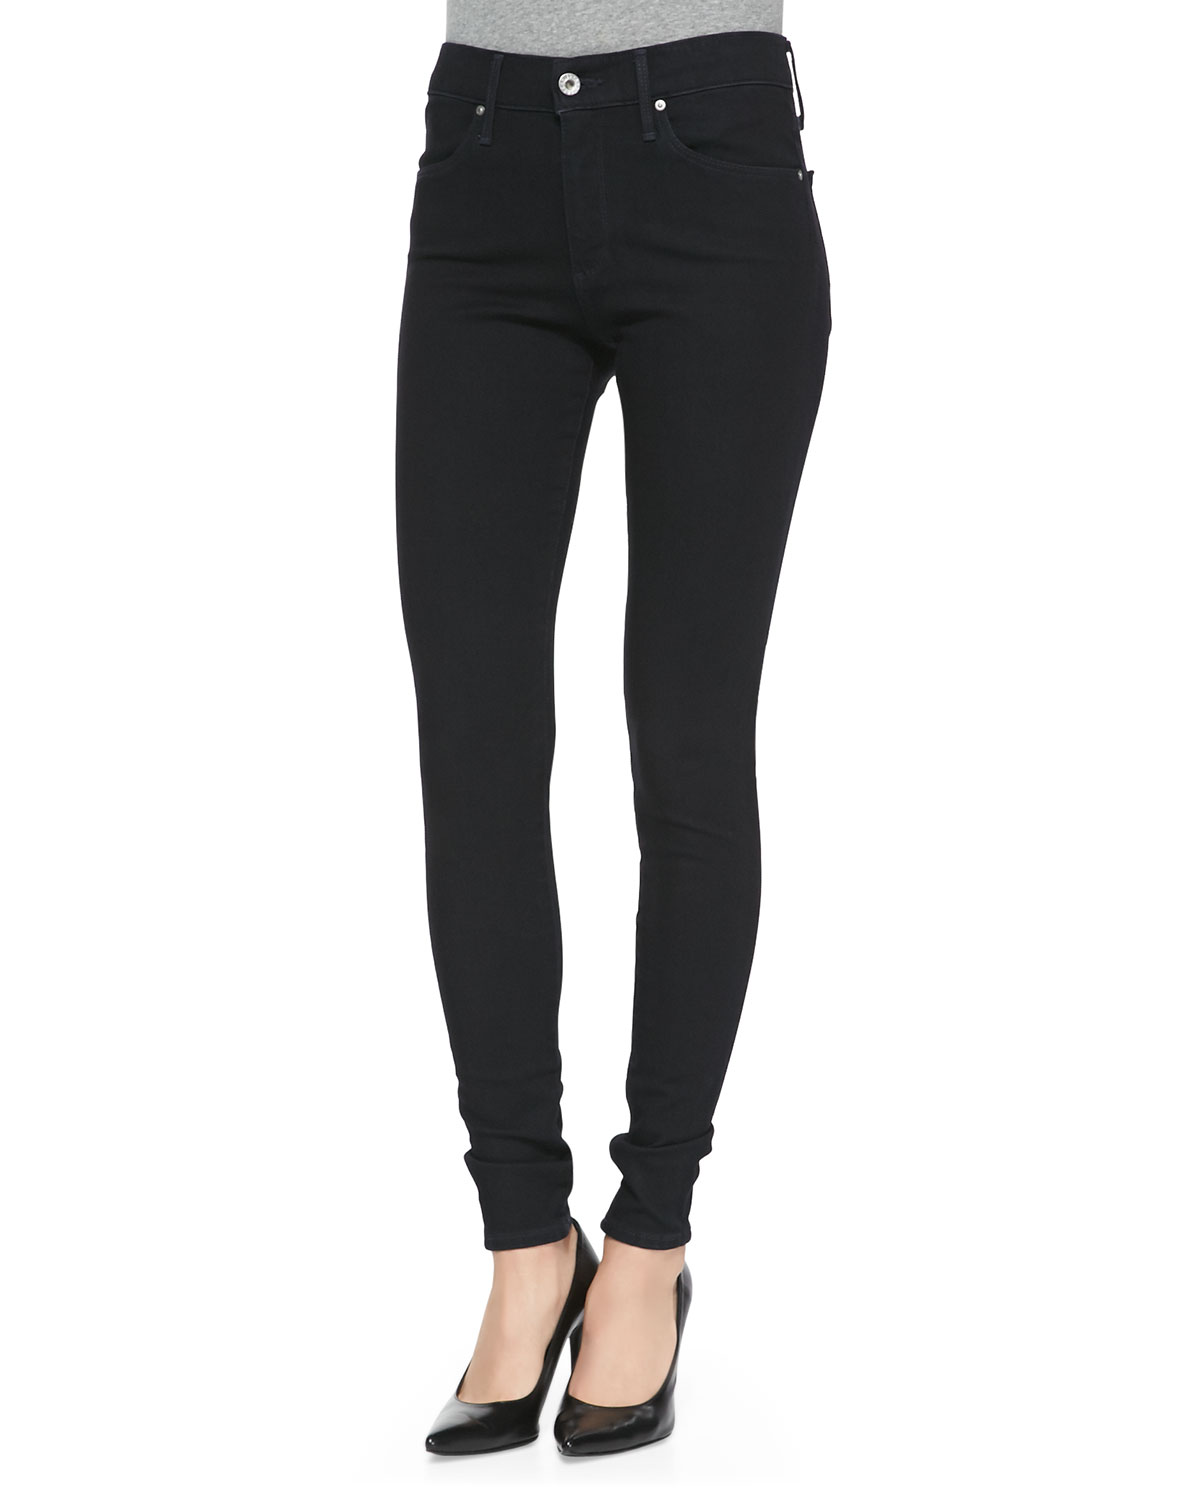 Farrah Hideout High-Rise Skinny Jeans, Size: 24 - AG